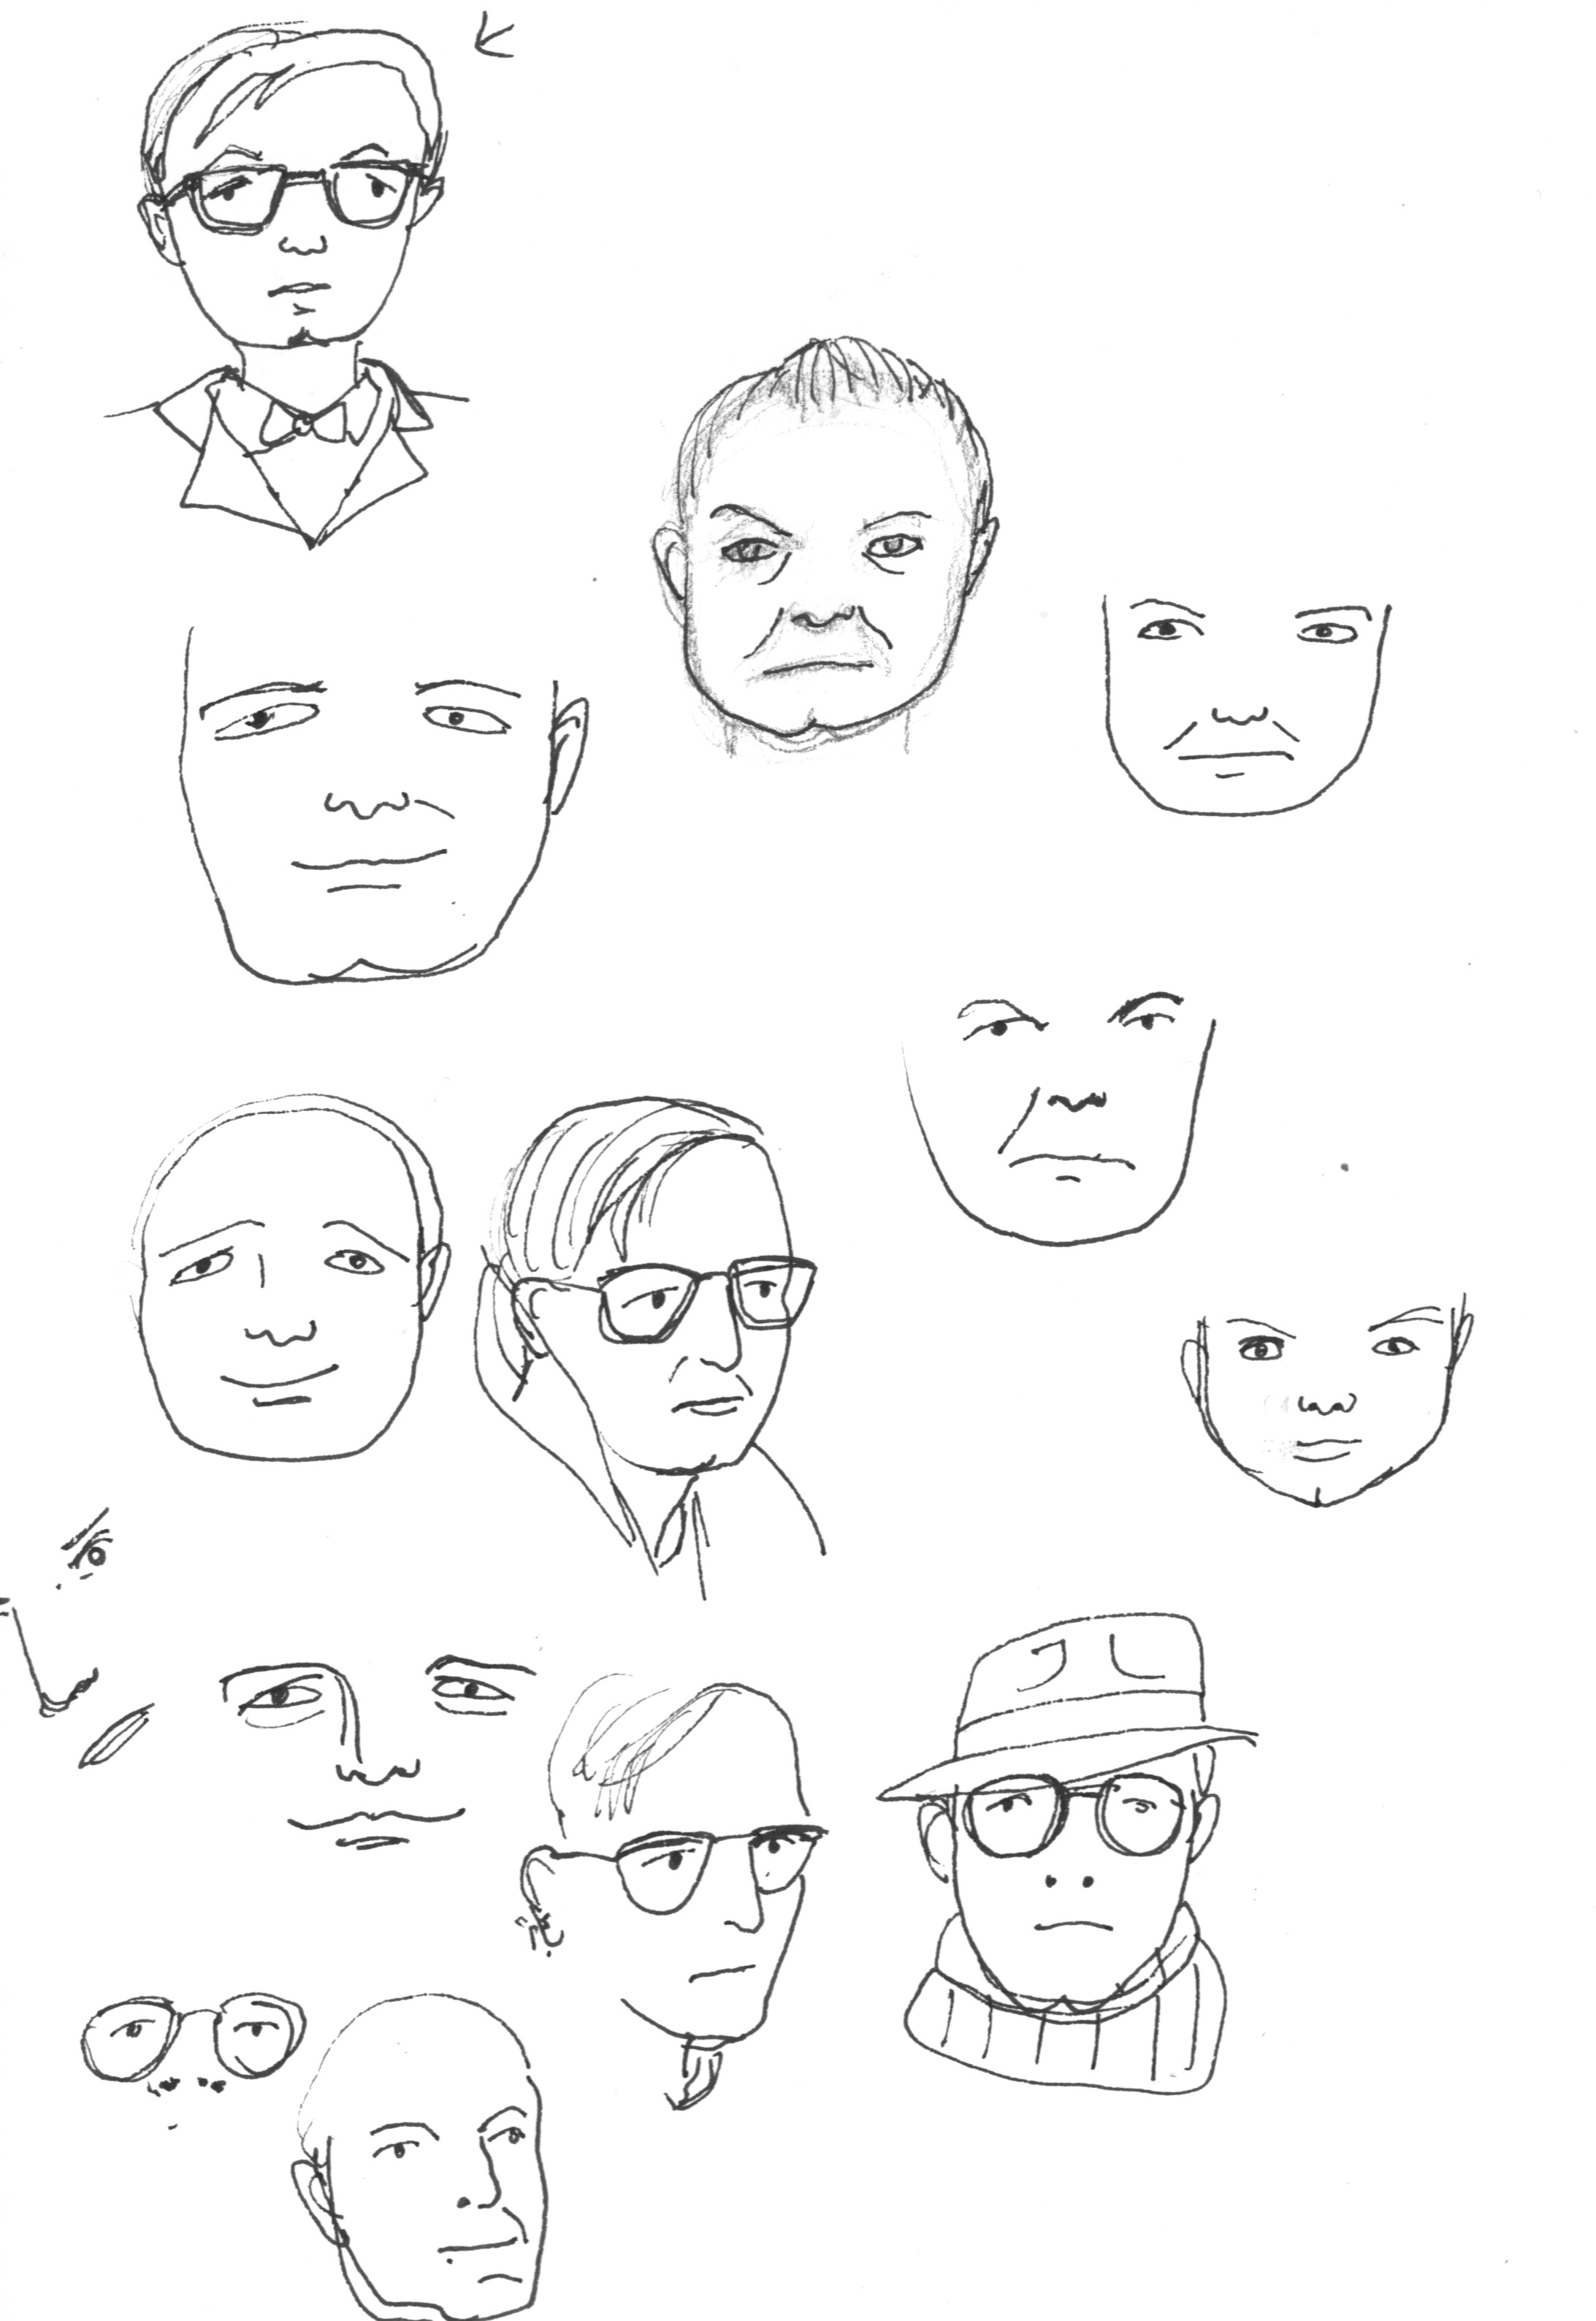 Truman Capote was the hardest to capture the likeness of with simple lines!